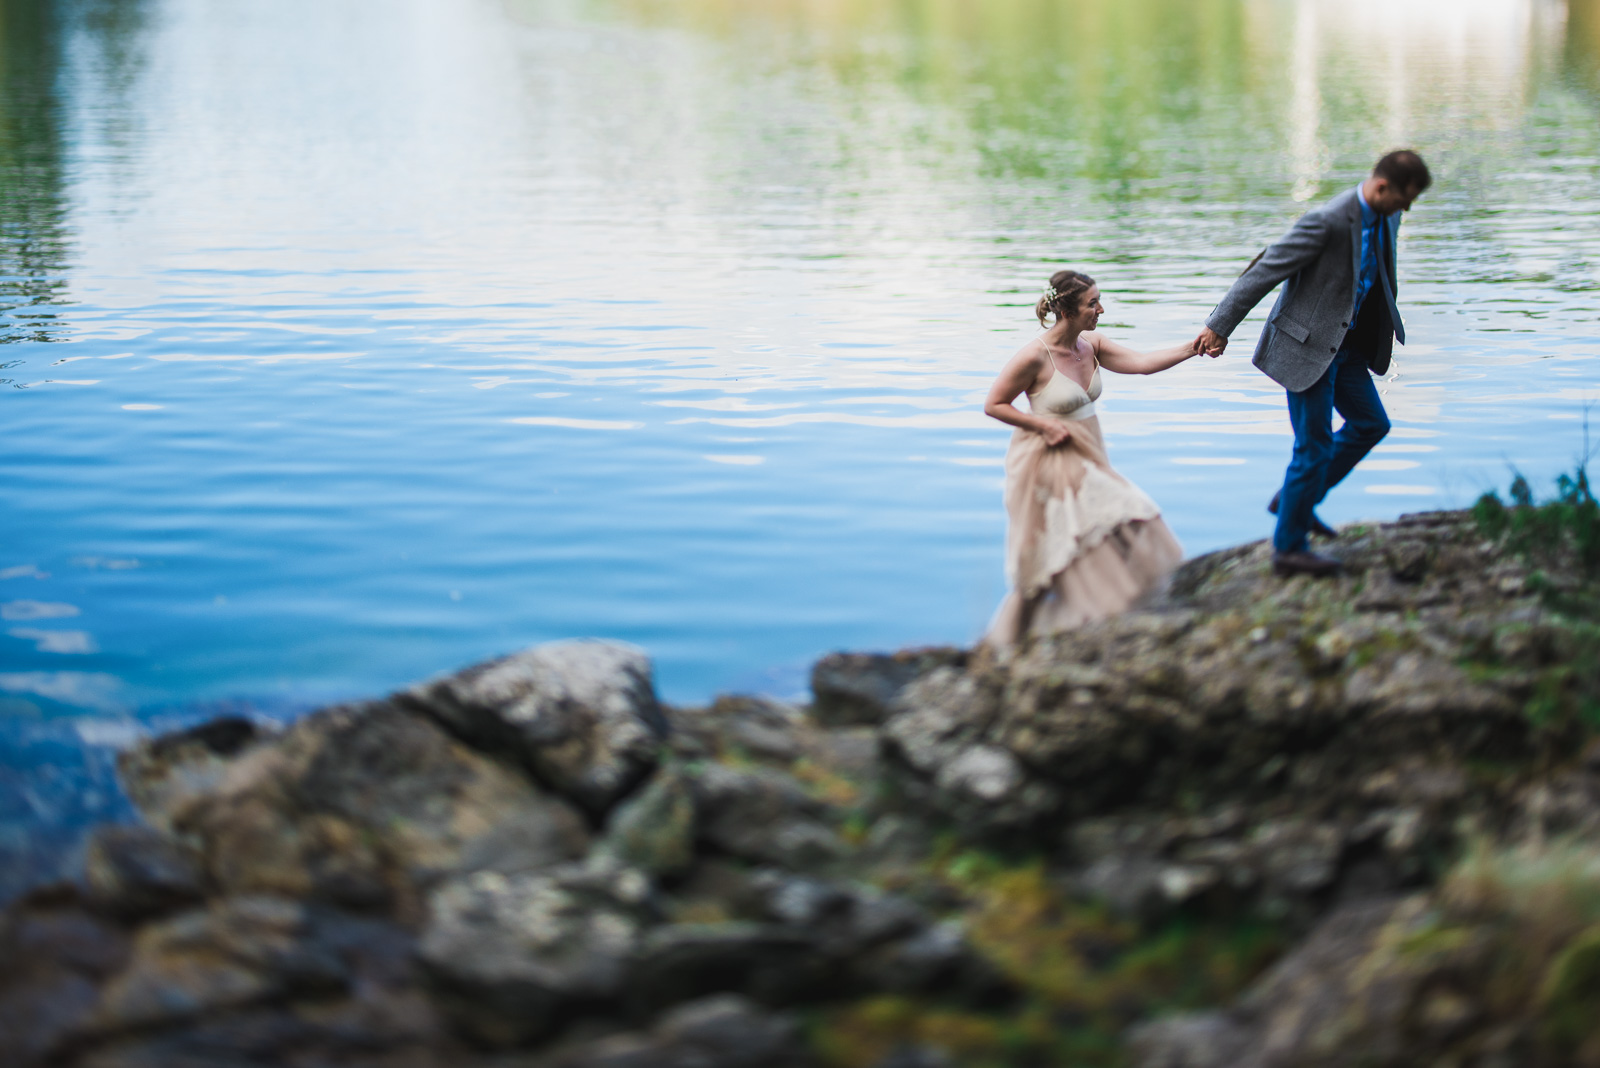 vancouver-island-wedding-photographers-cliff-gilker-park-smugglers-cove-elopement-34.jpg